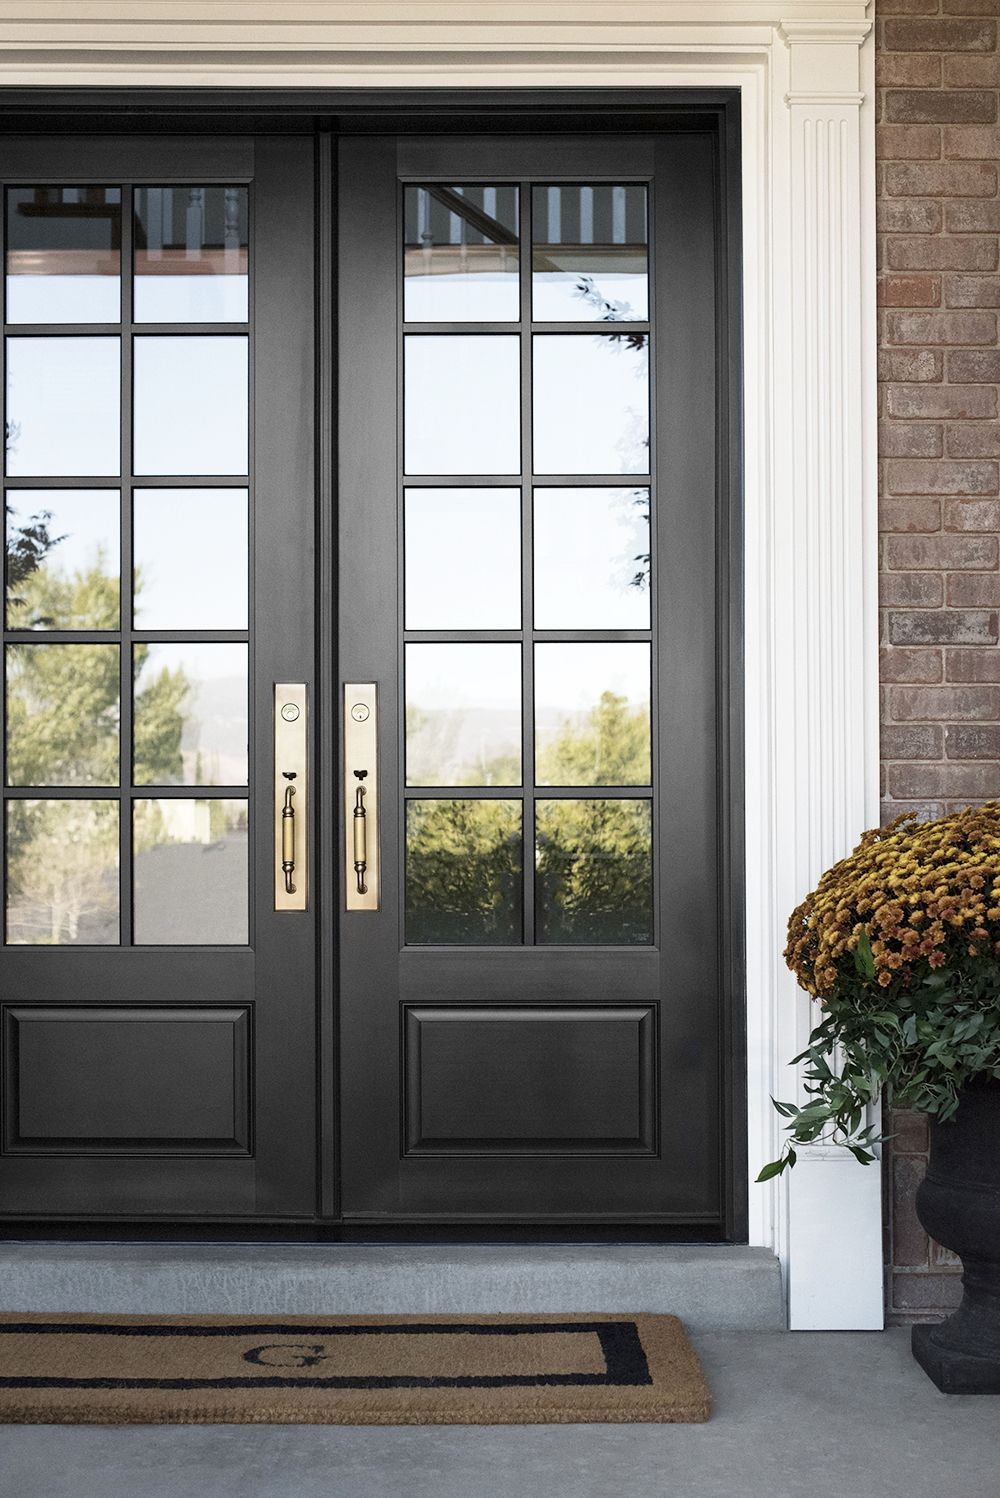 10 Home Updates That Actually Pay Off Add Value Traditional Front Doors Double Front Doors Exterior Doors